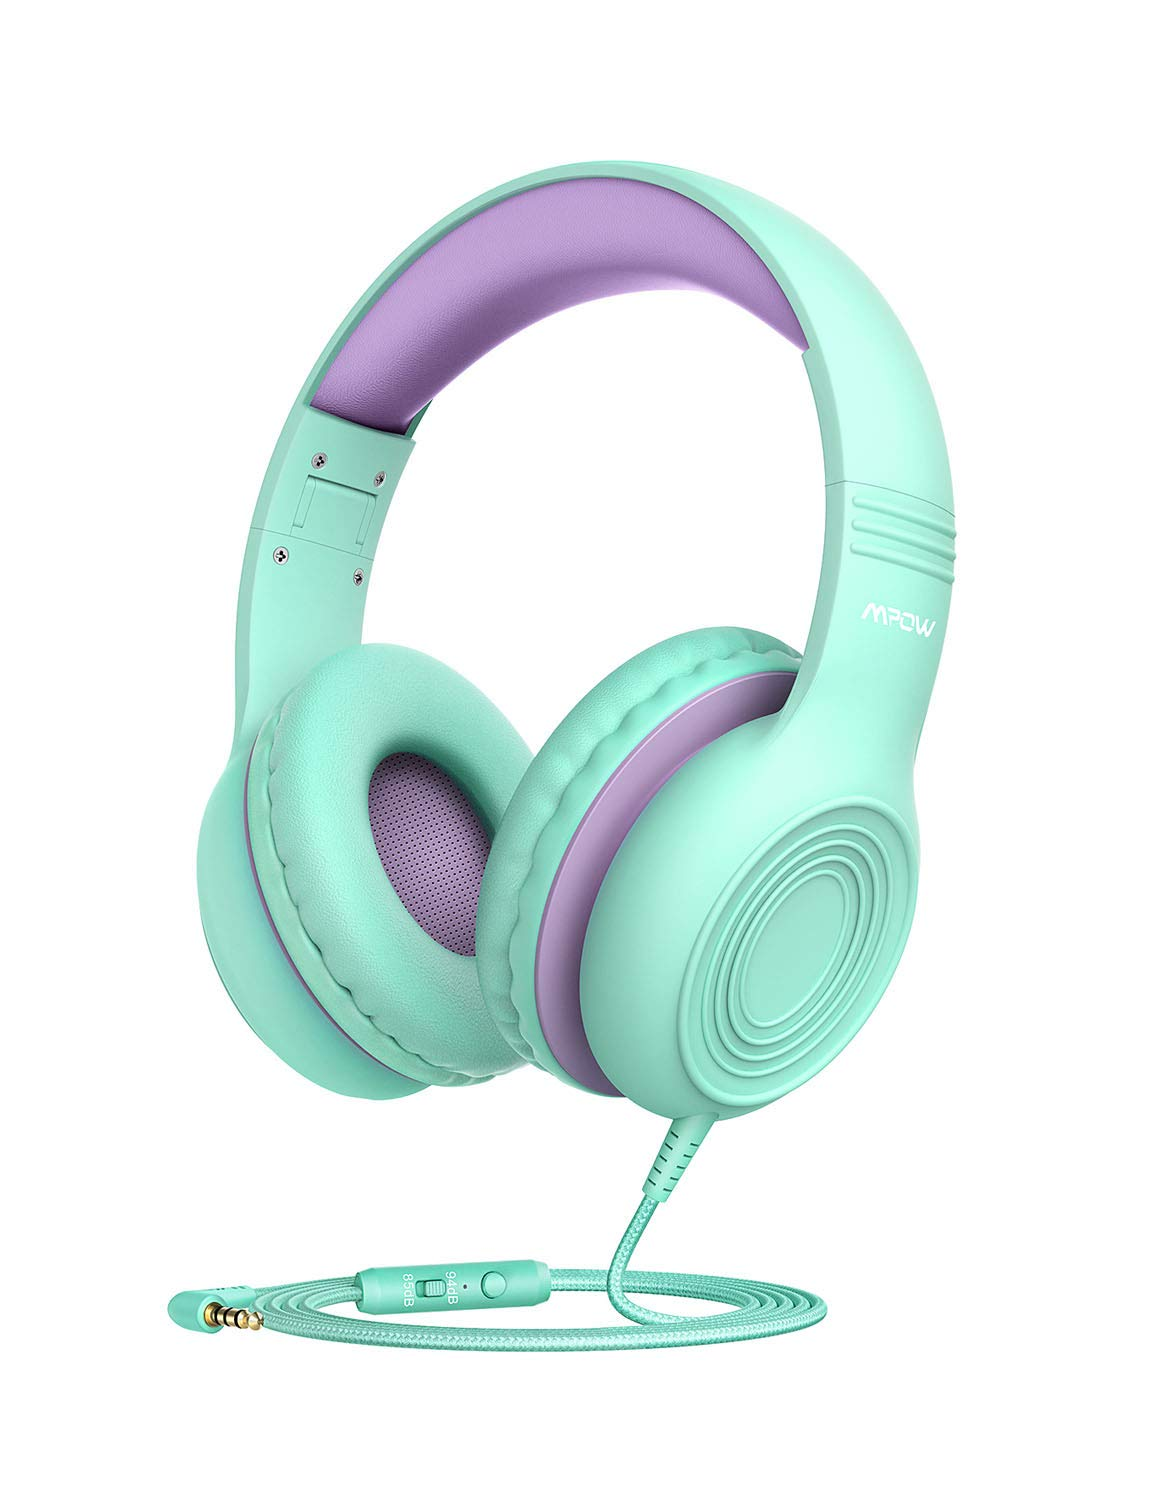 Mpow CH6 [2019 New Version] Kids Headphones Over-Ear/On-Ear, HD Sound Sharing Function Headphones for Children Boys Girls, Volume Limited Safe Foldable Headset w/Mic for School/PC/Cellphone by Mpow